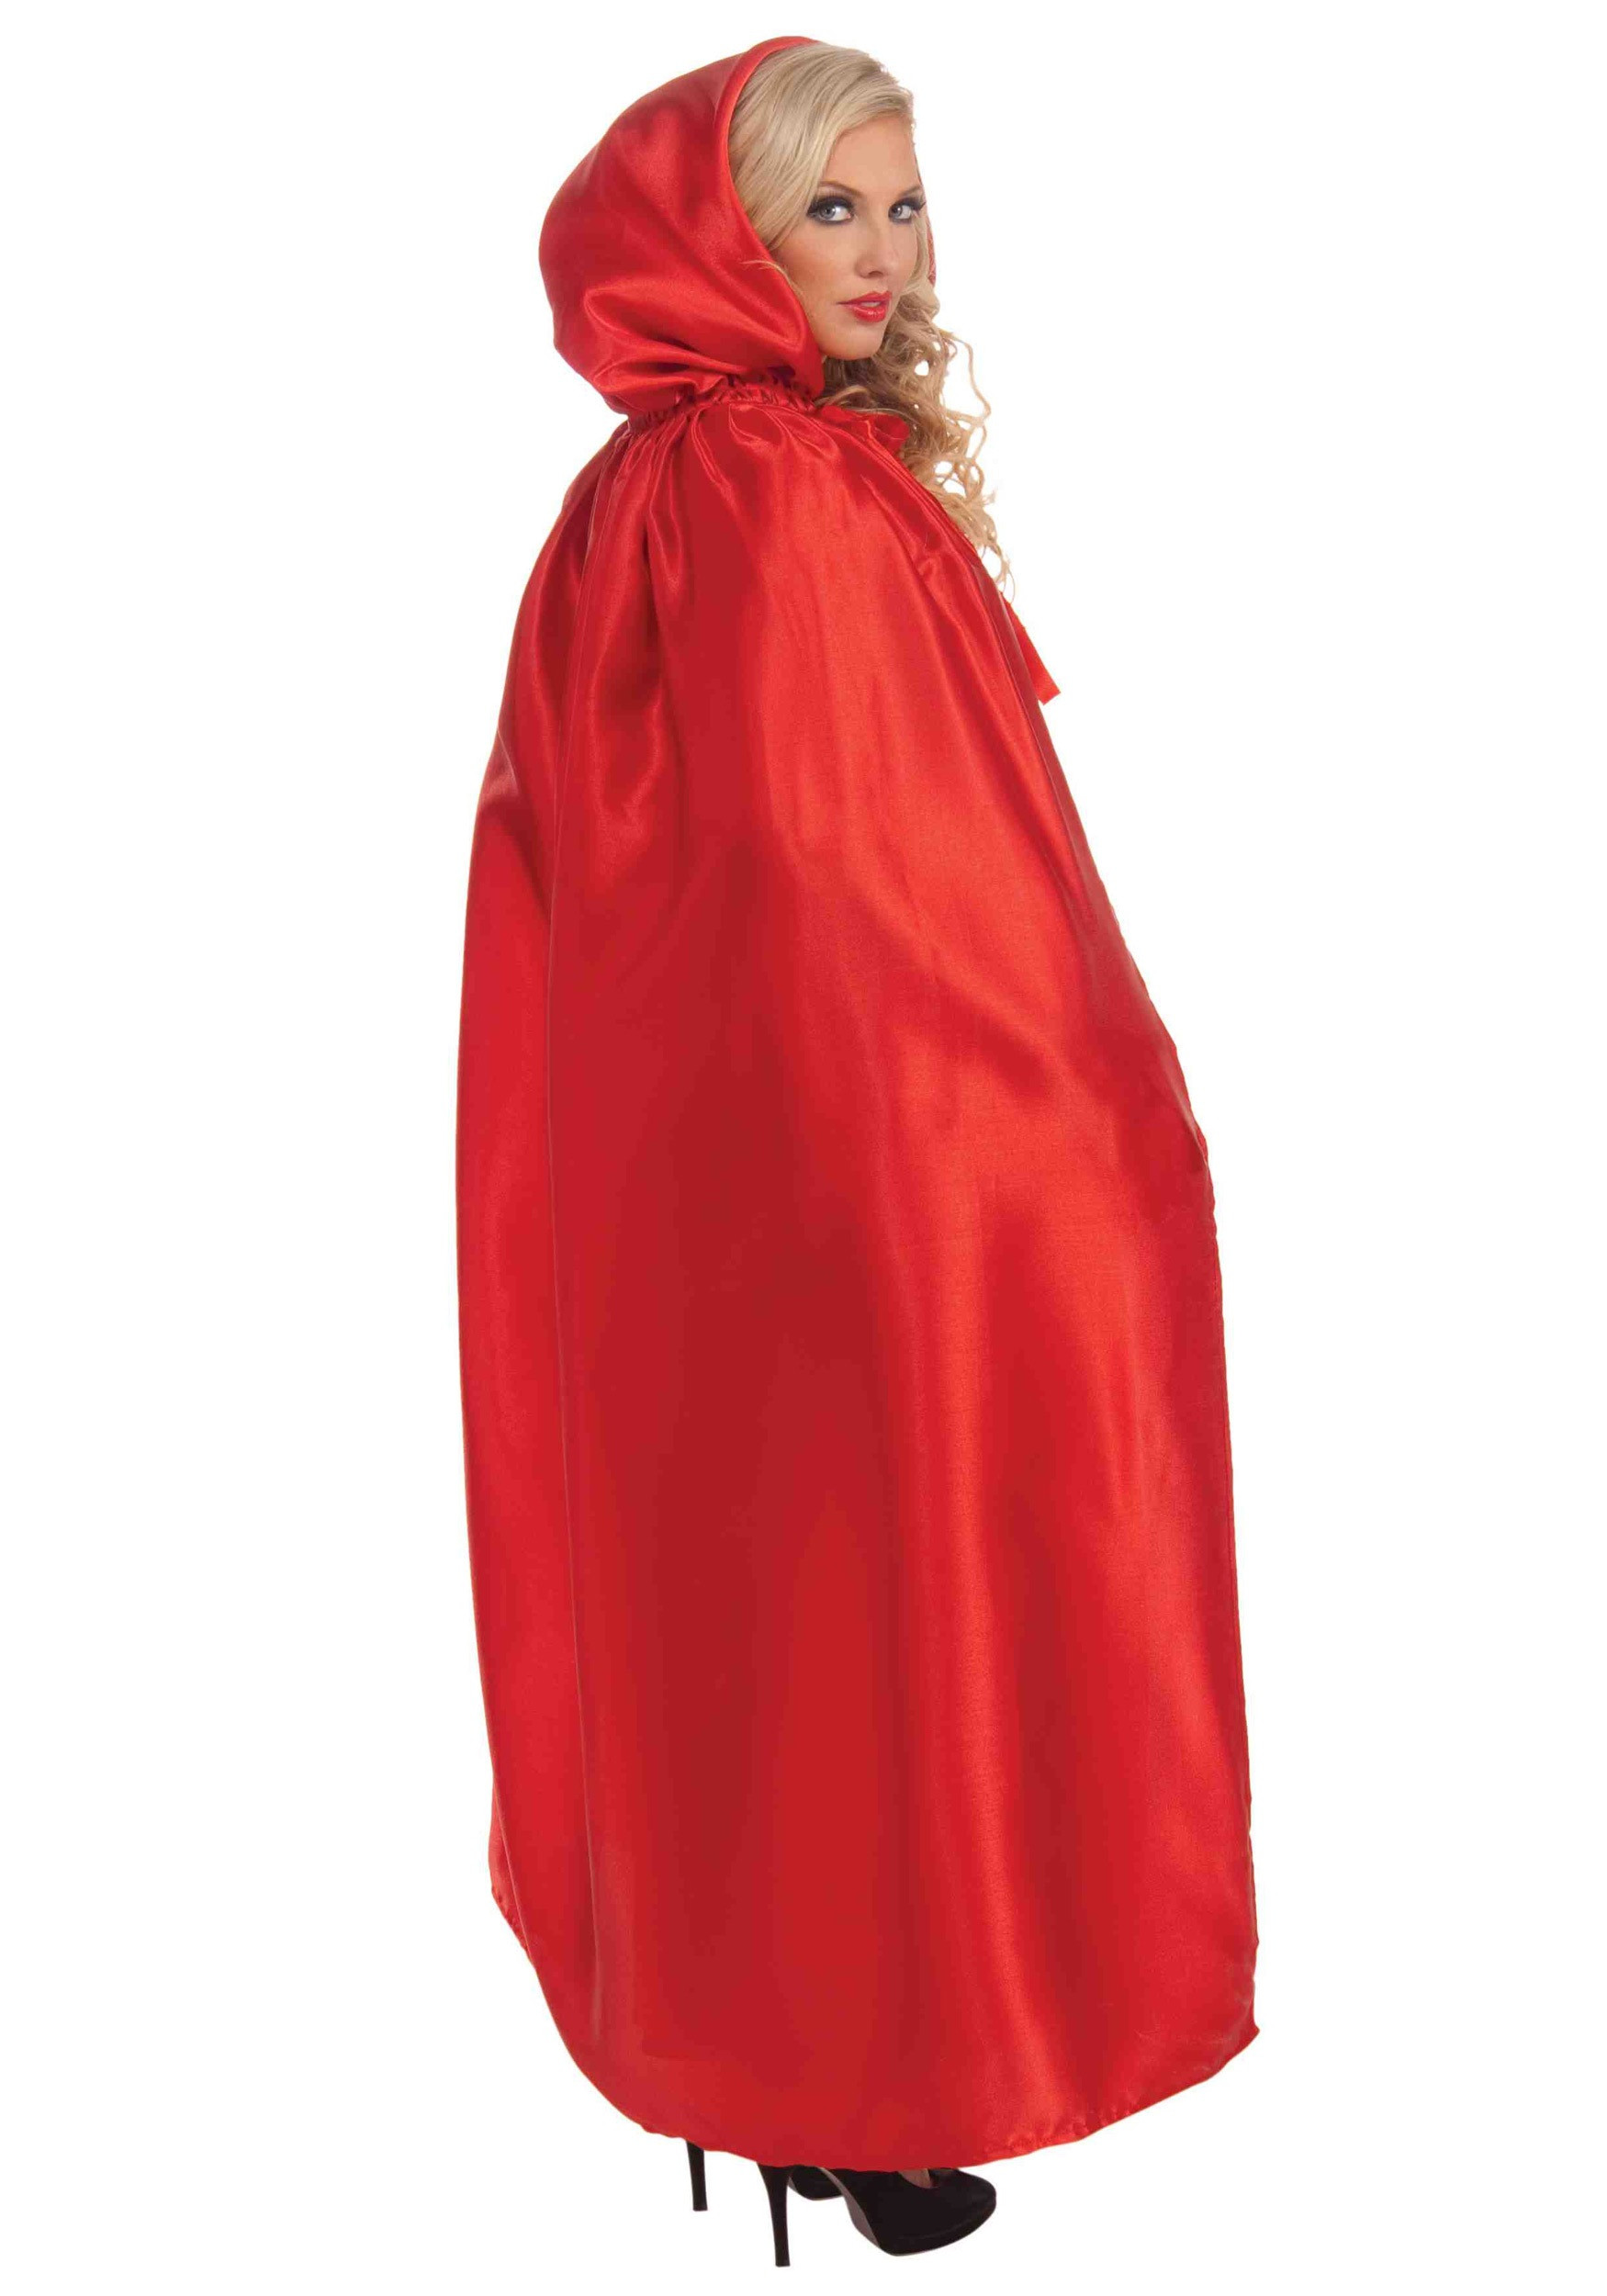 Red Hooded Cape Best Of Red Satin Cape Of Perfect 49 Photos Red Hooded Cape